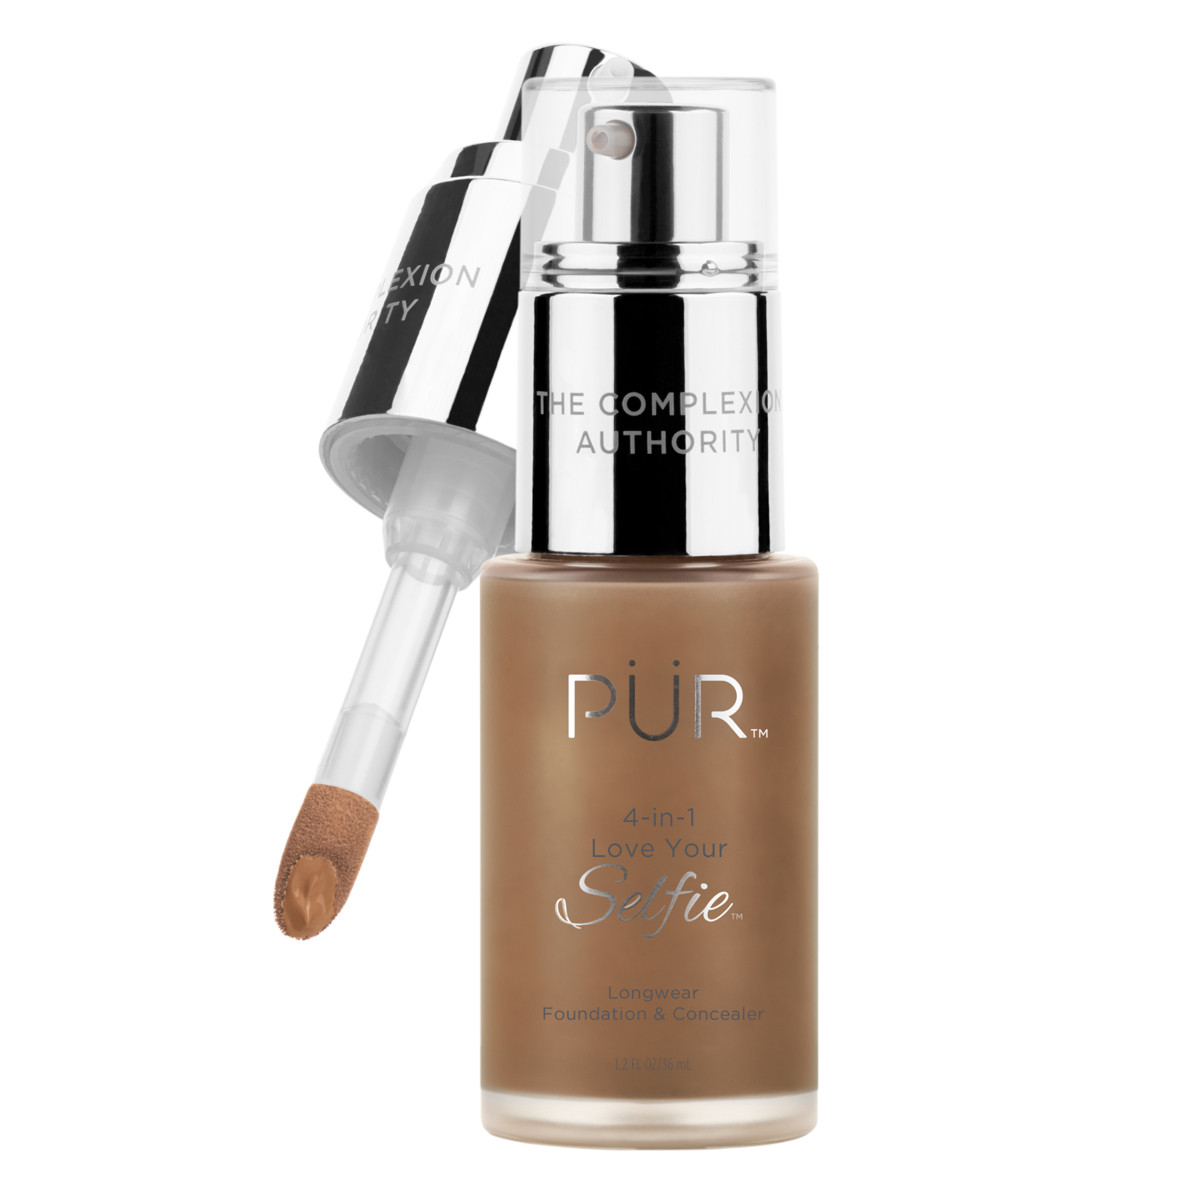 4-in-1 Love Your Selfie™ Longwear Foundation & Concealer in DN6